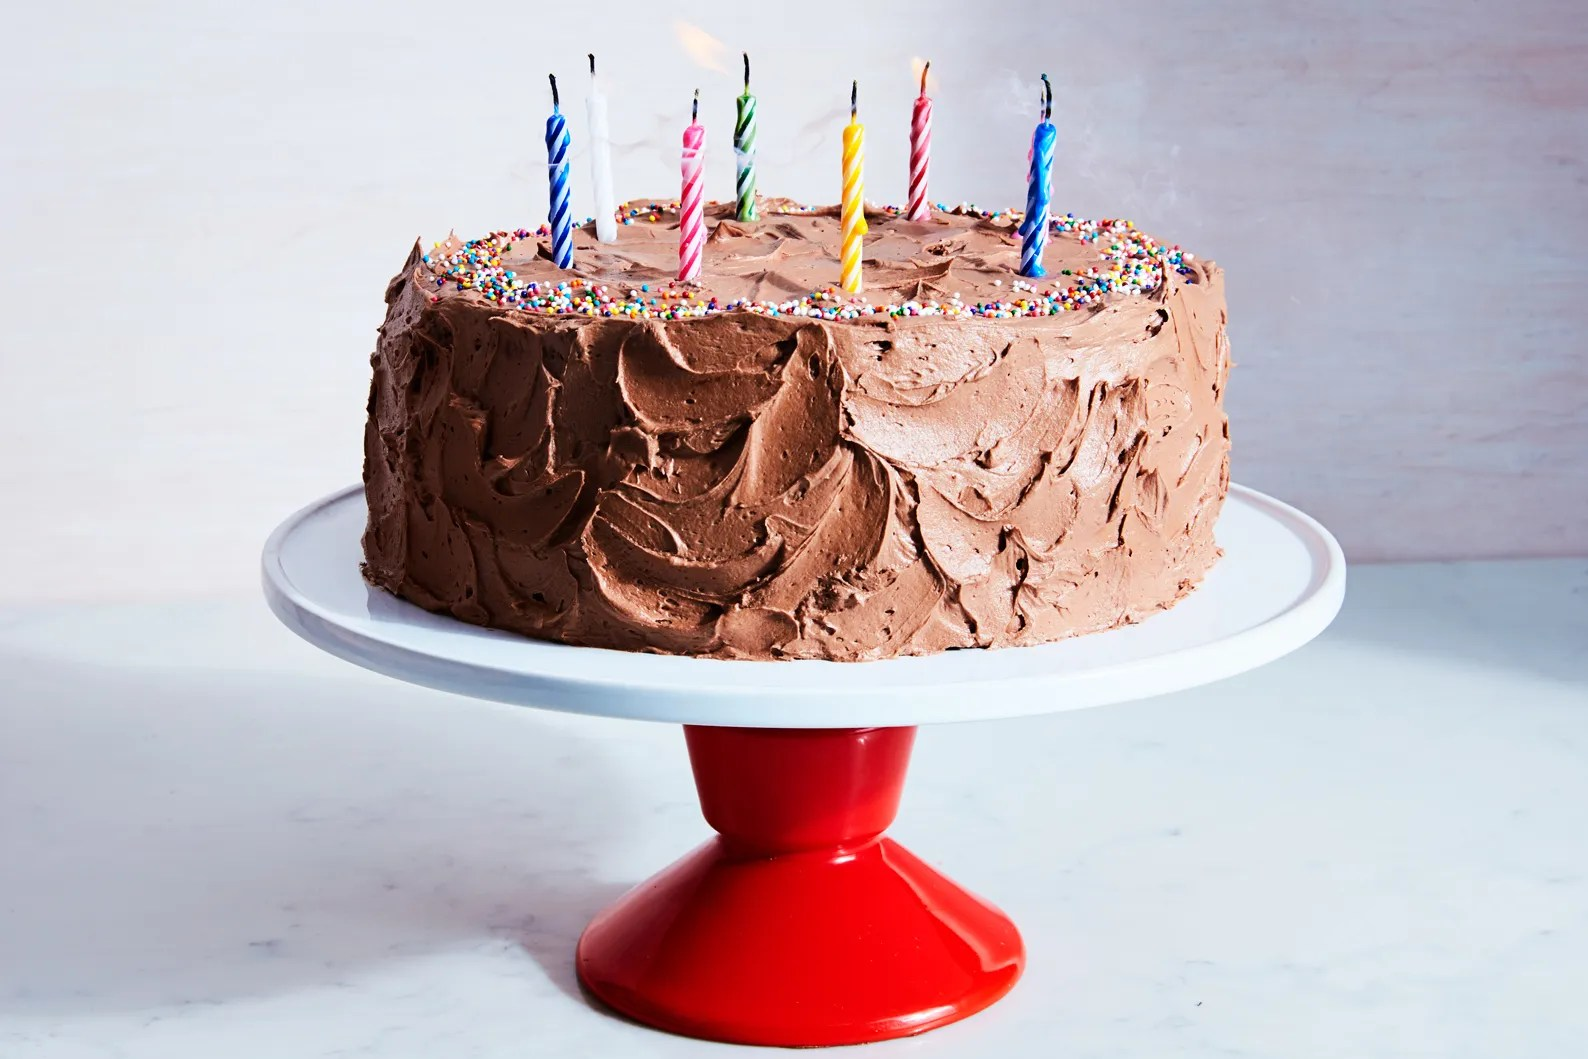 51 Of Our Most Jaw Droppingly Beautiful Birthday Cake Recipes Epicurious Epicurious